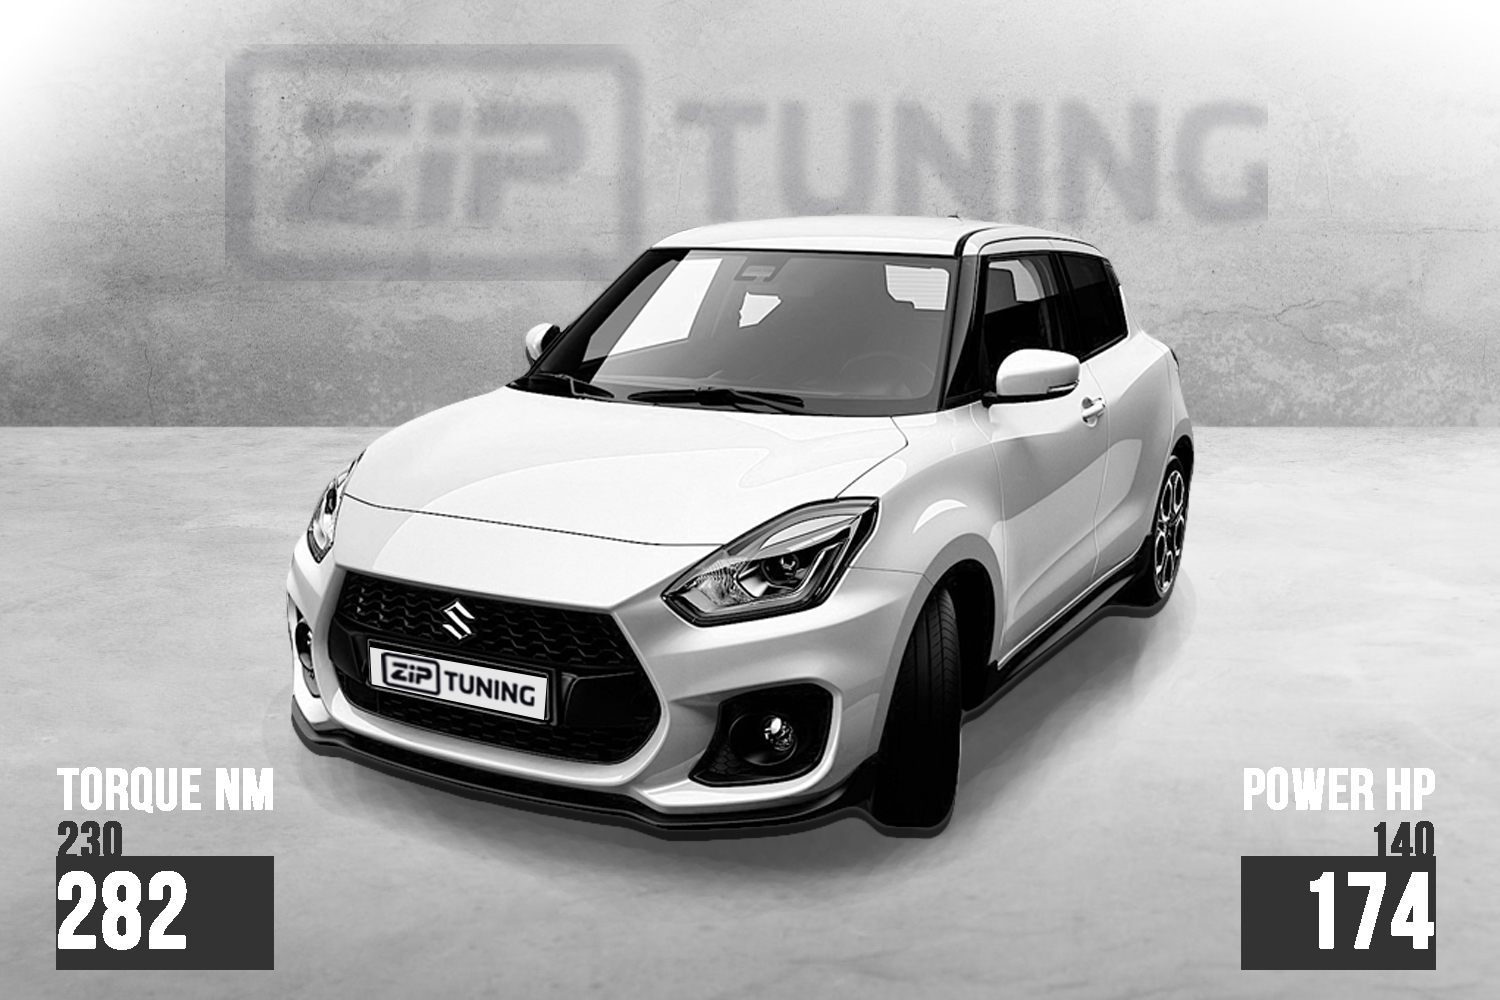 suzuki swift sport tuning 1 4 boosterjet with 174 hp and. Black Bedroom Furniture Sets. Home Design Ideas